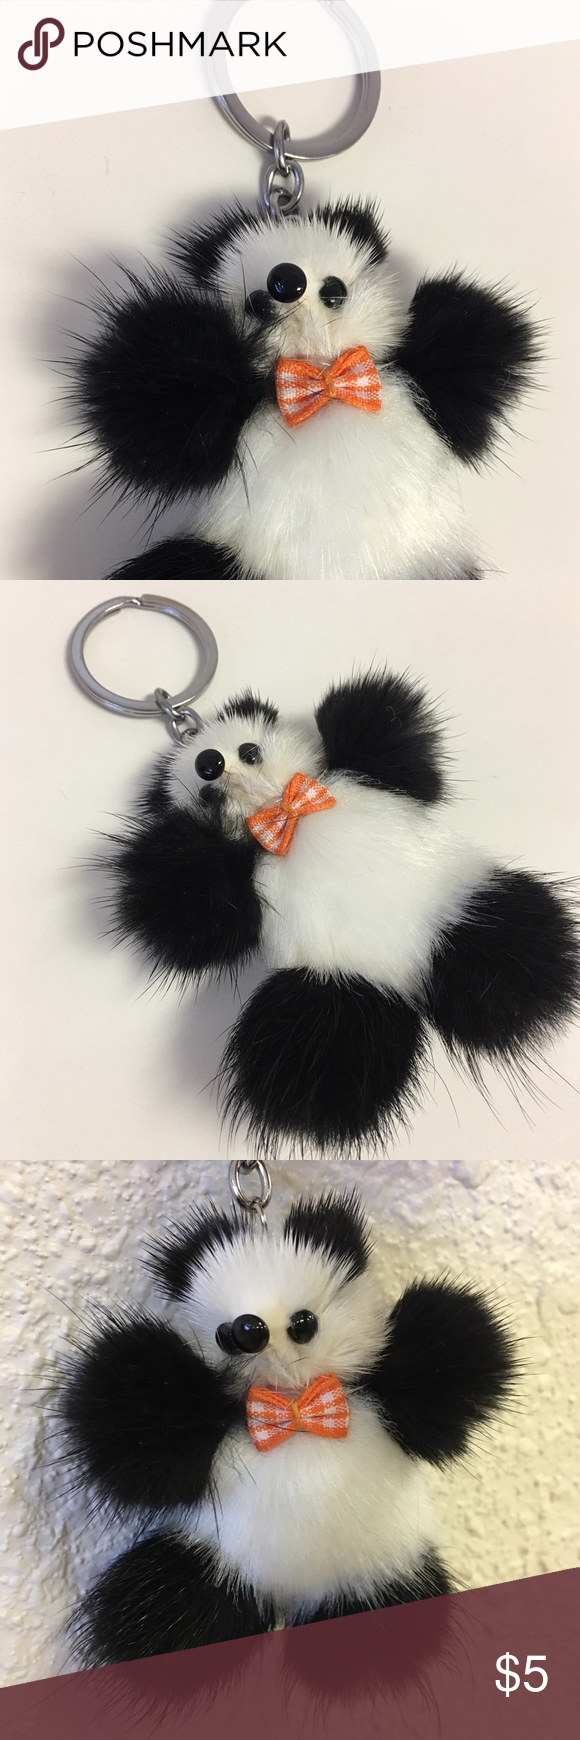 Keychains ($5)You can use for car key or hand bag too. I also see it at vogue nail shop in arlington tx 76013. No delivery. Thank you. Accessories Key & Card Holders